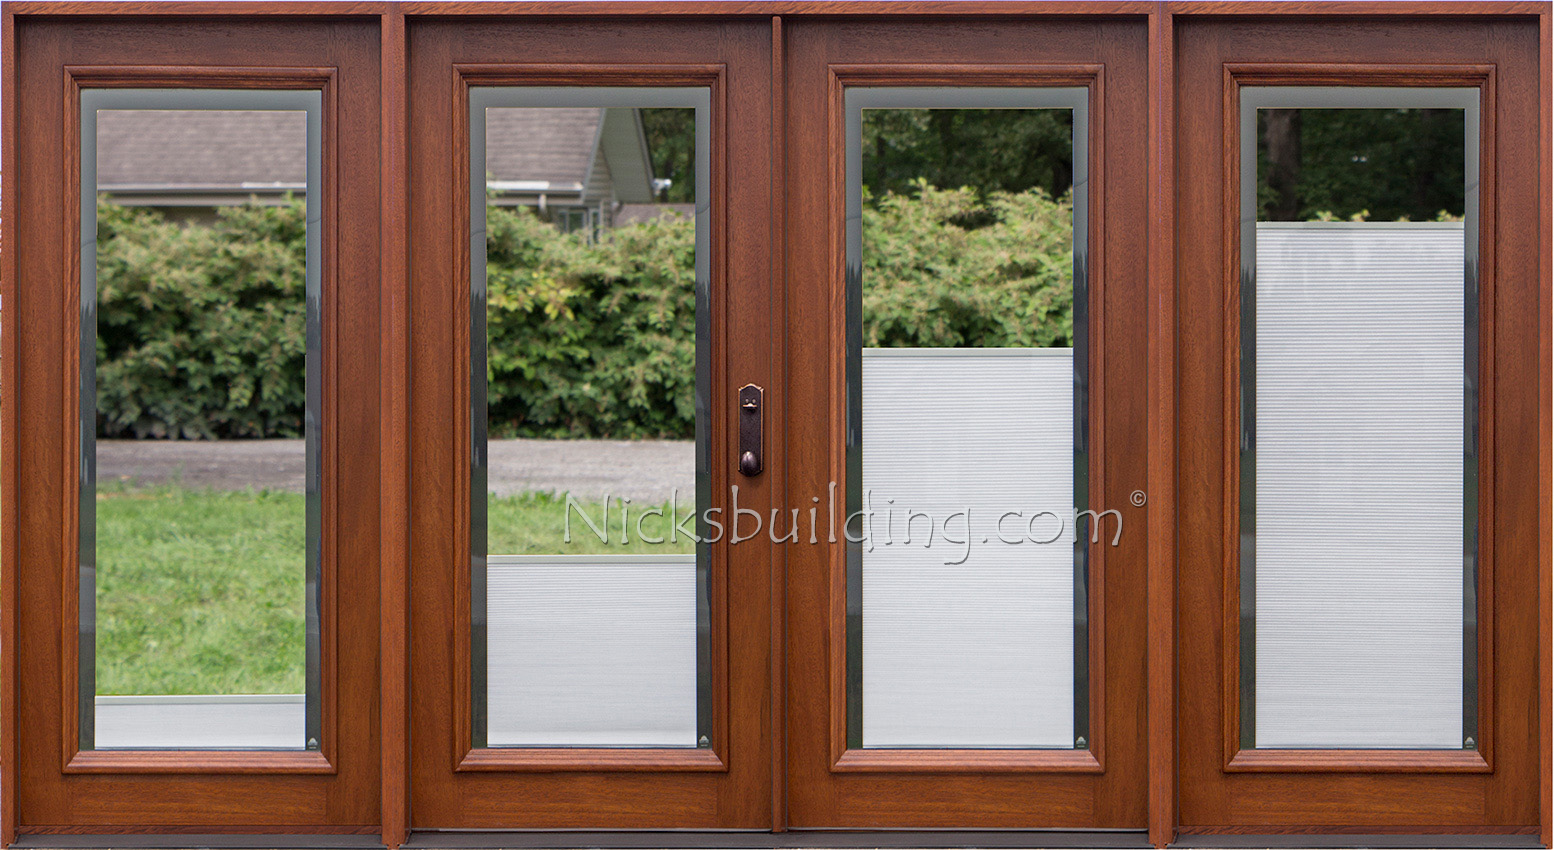 French Door Blinds Between Glass Excellent Windows With Blinds 81 Pella Windows With Blinds